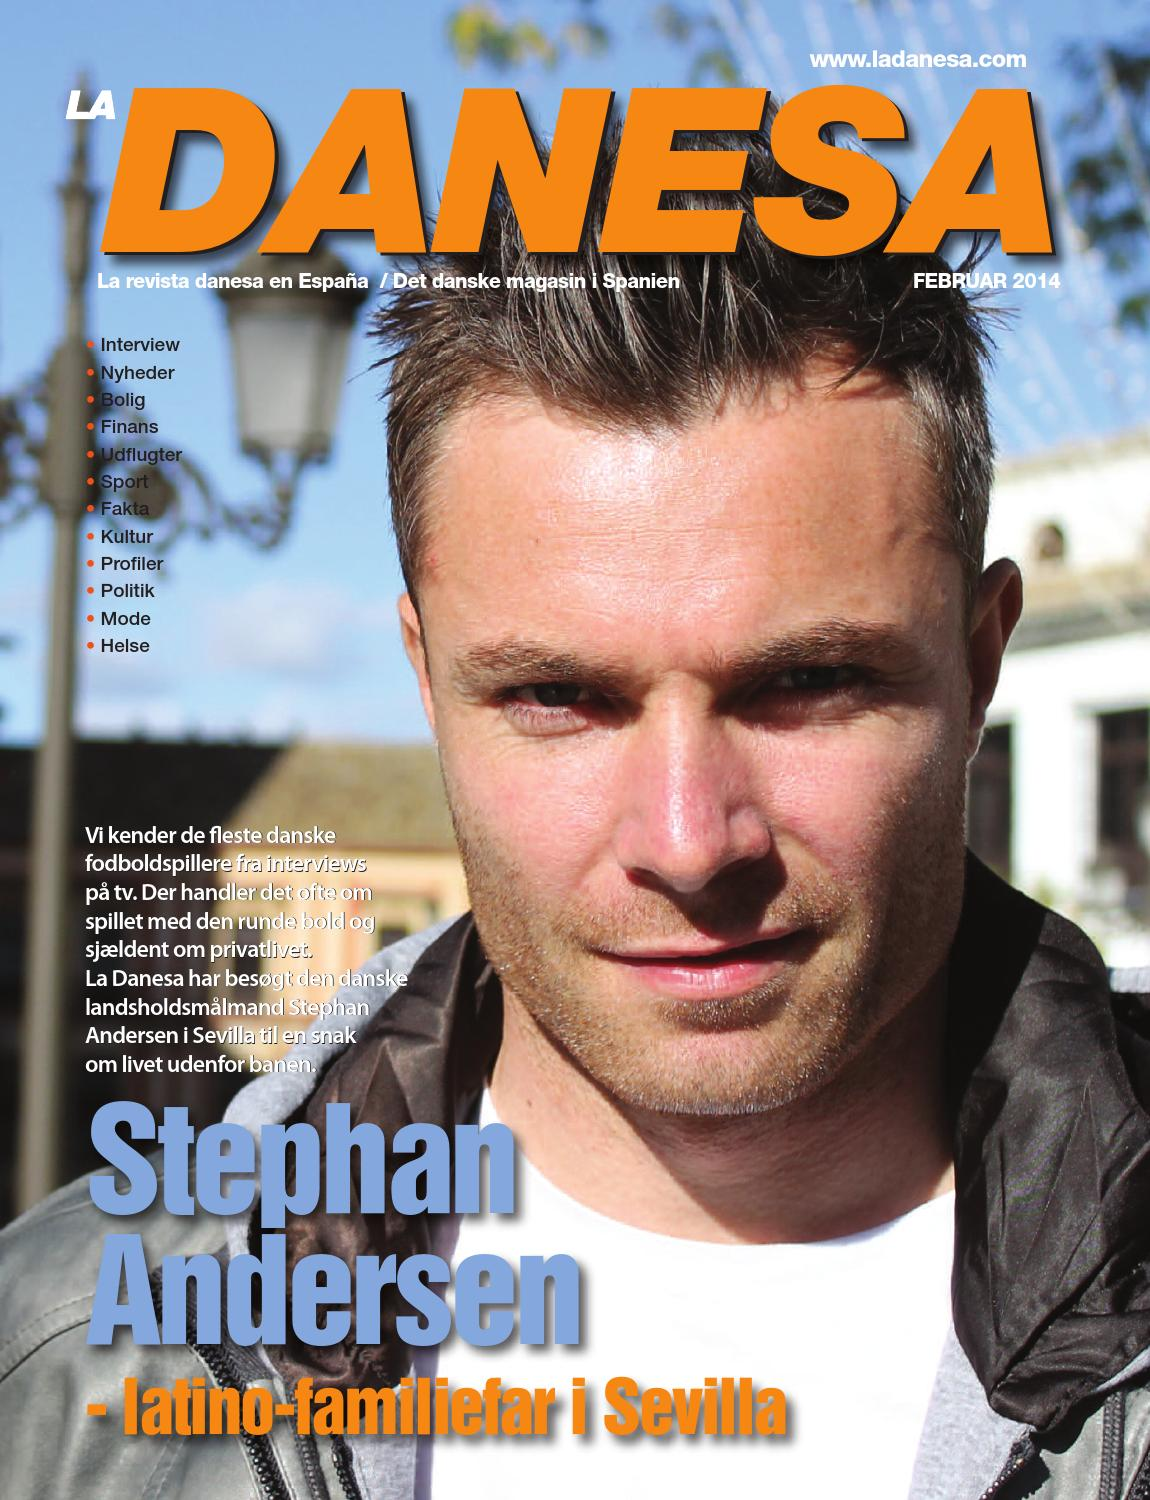 La Danesa oktober 2016 by Norrbom Marketing - issuu